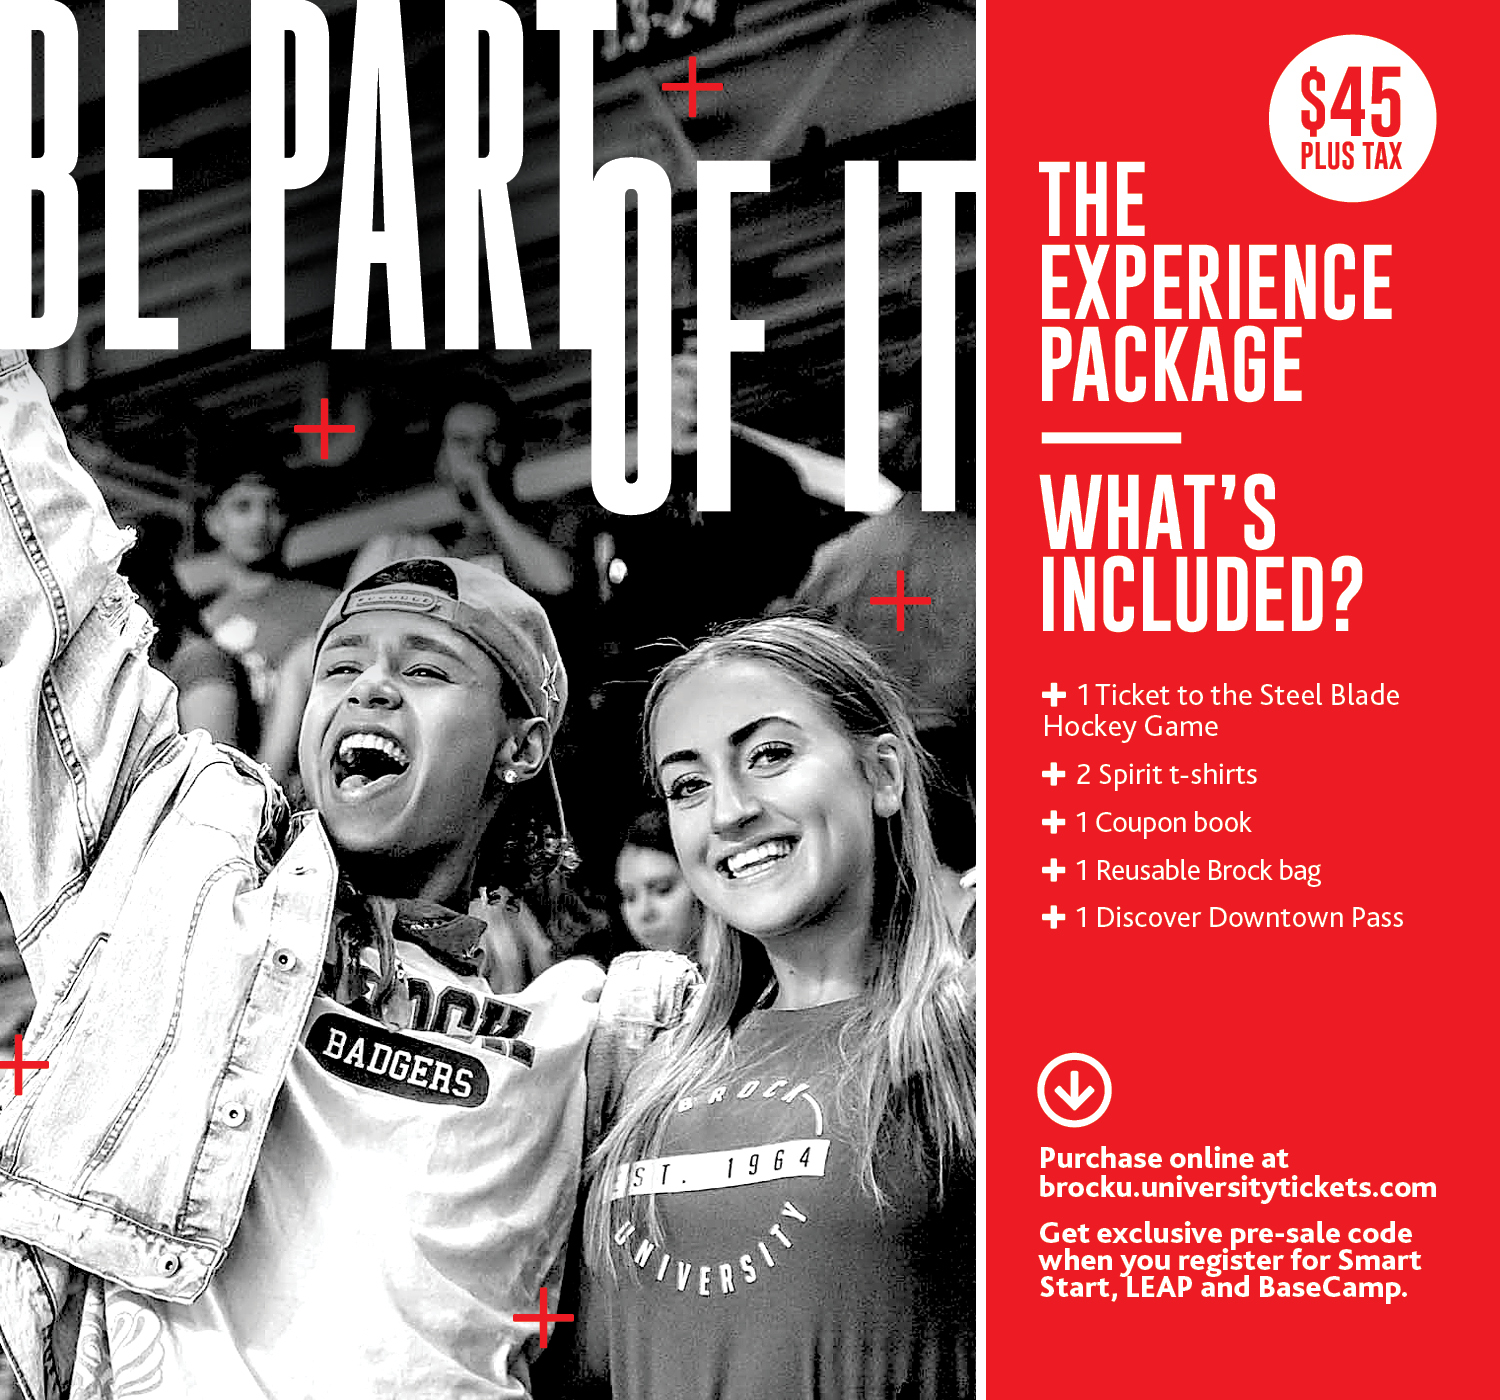 Be part of it - the Experience Package - available online at brocku.universitytickets.com